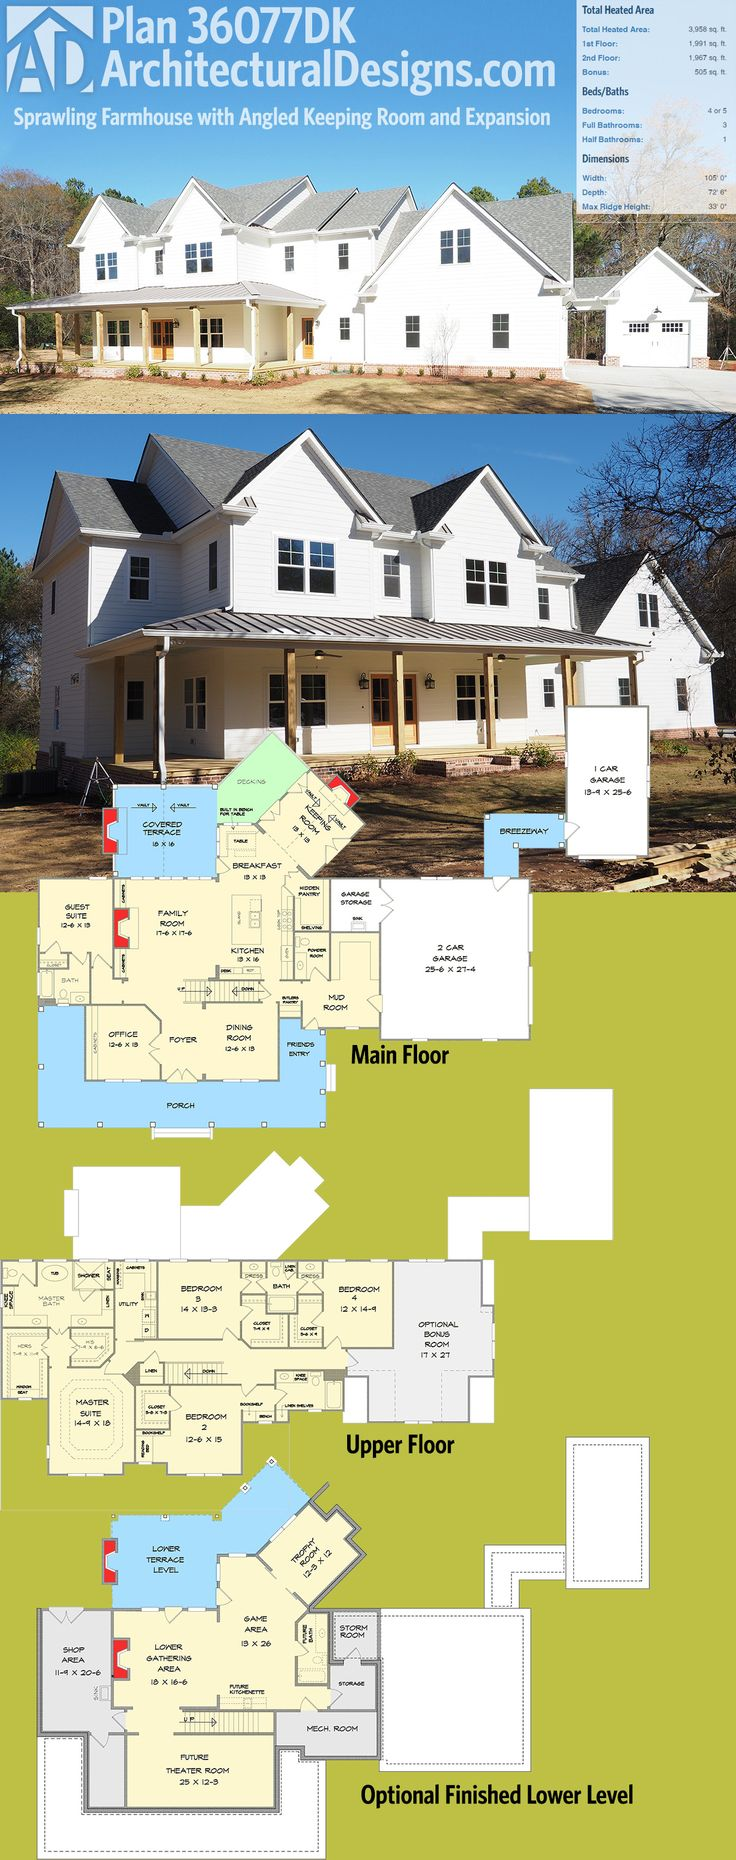 Architectural Designs House Plan is a sprawling